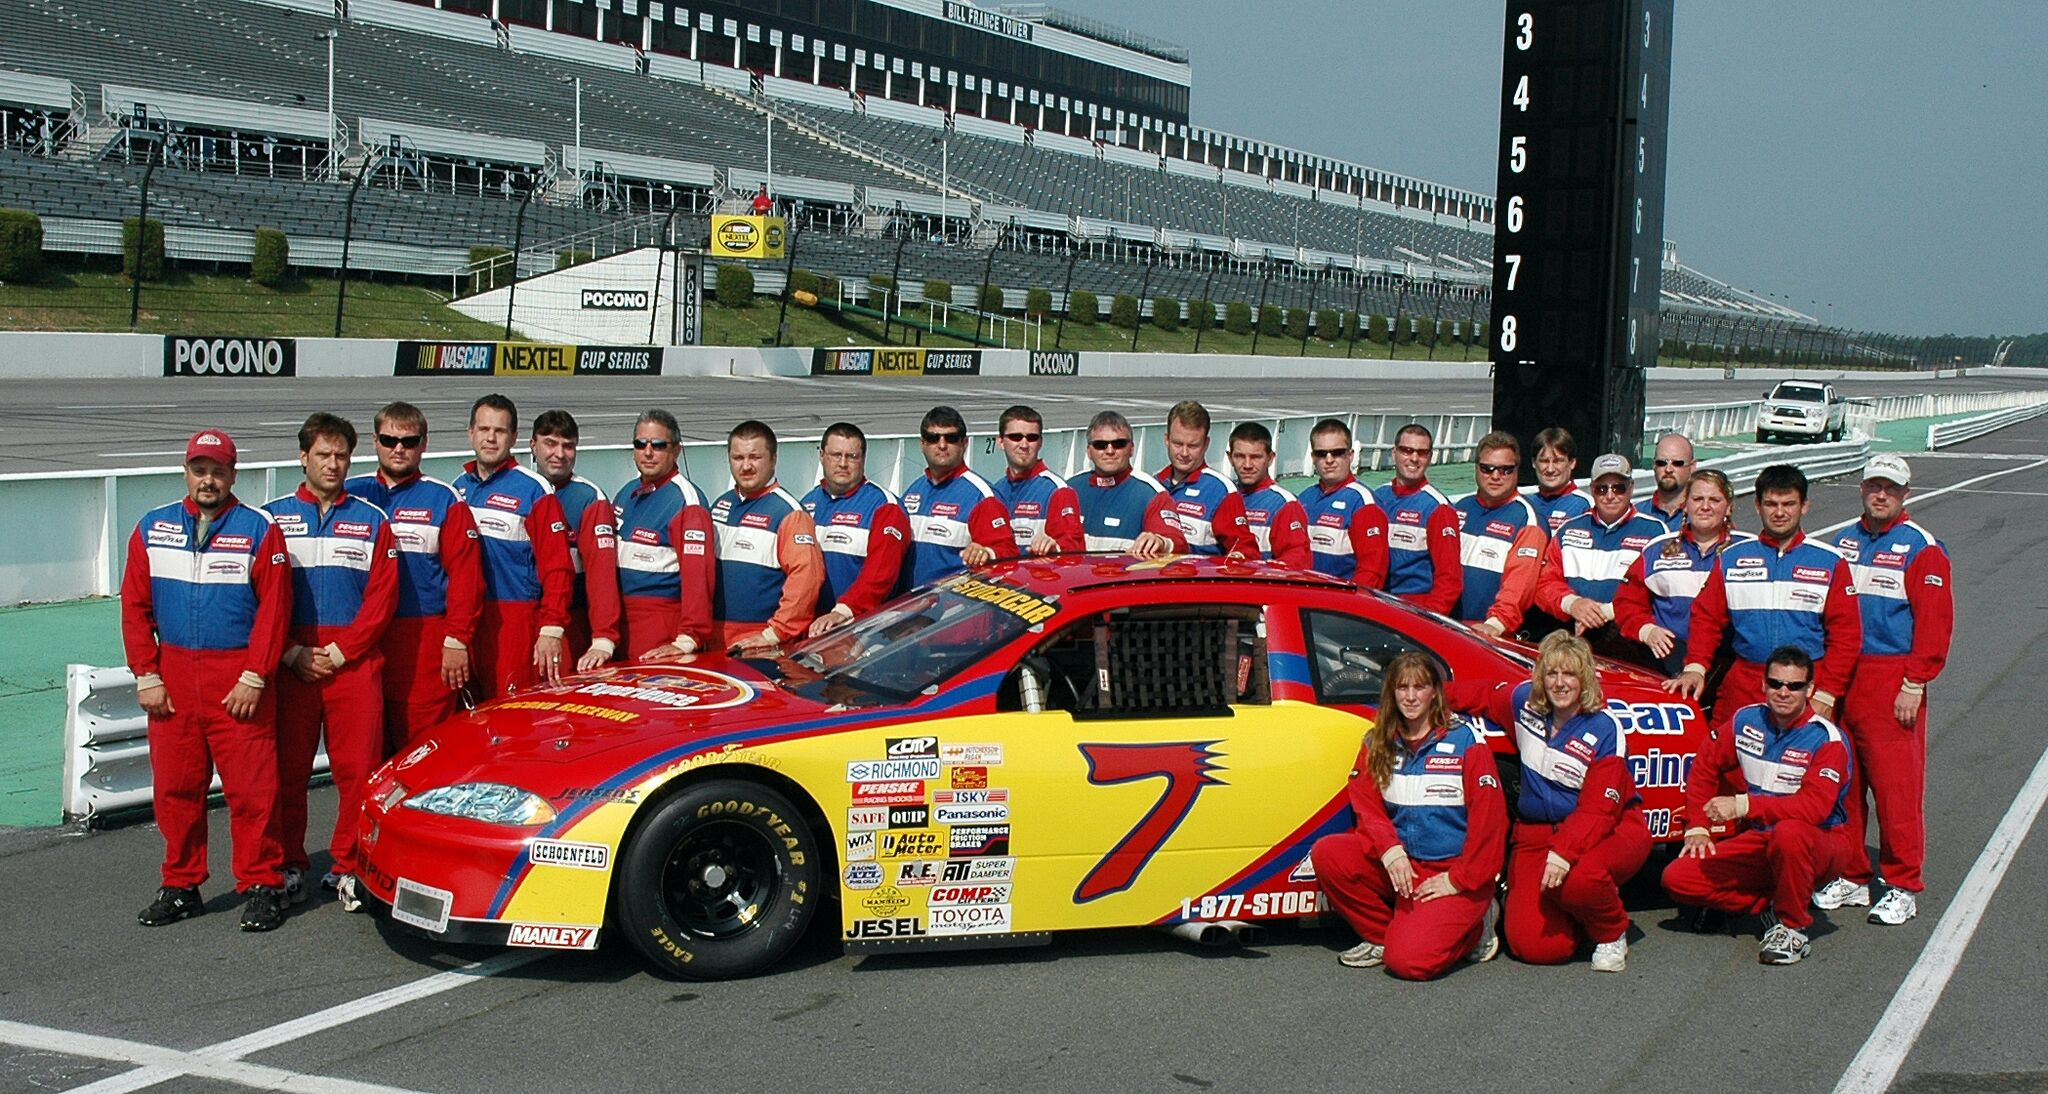 Pocono Raceway Video & Photo Gallery | Stock Car Racing Experience